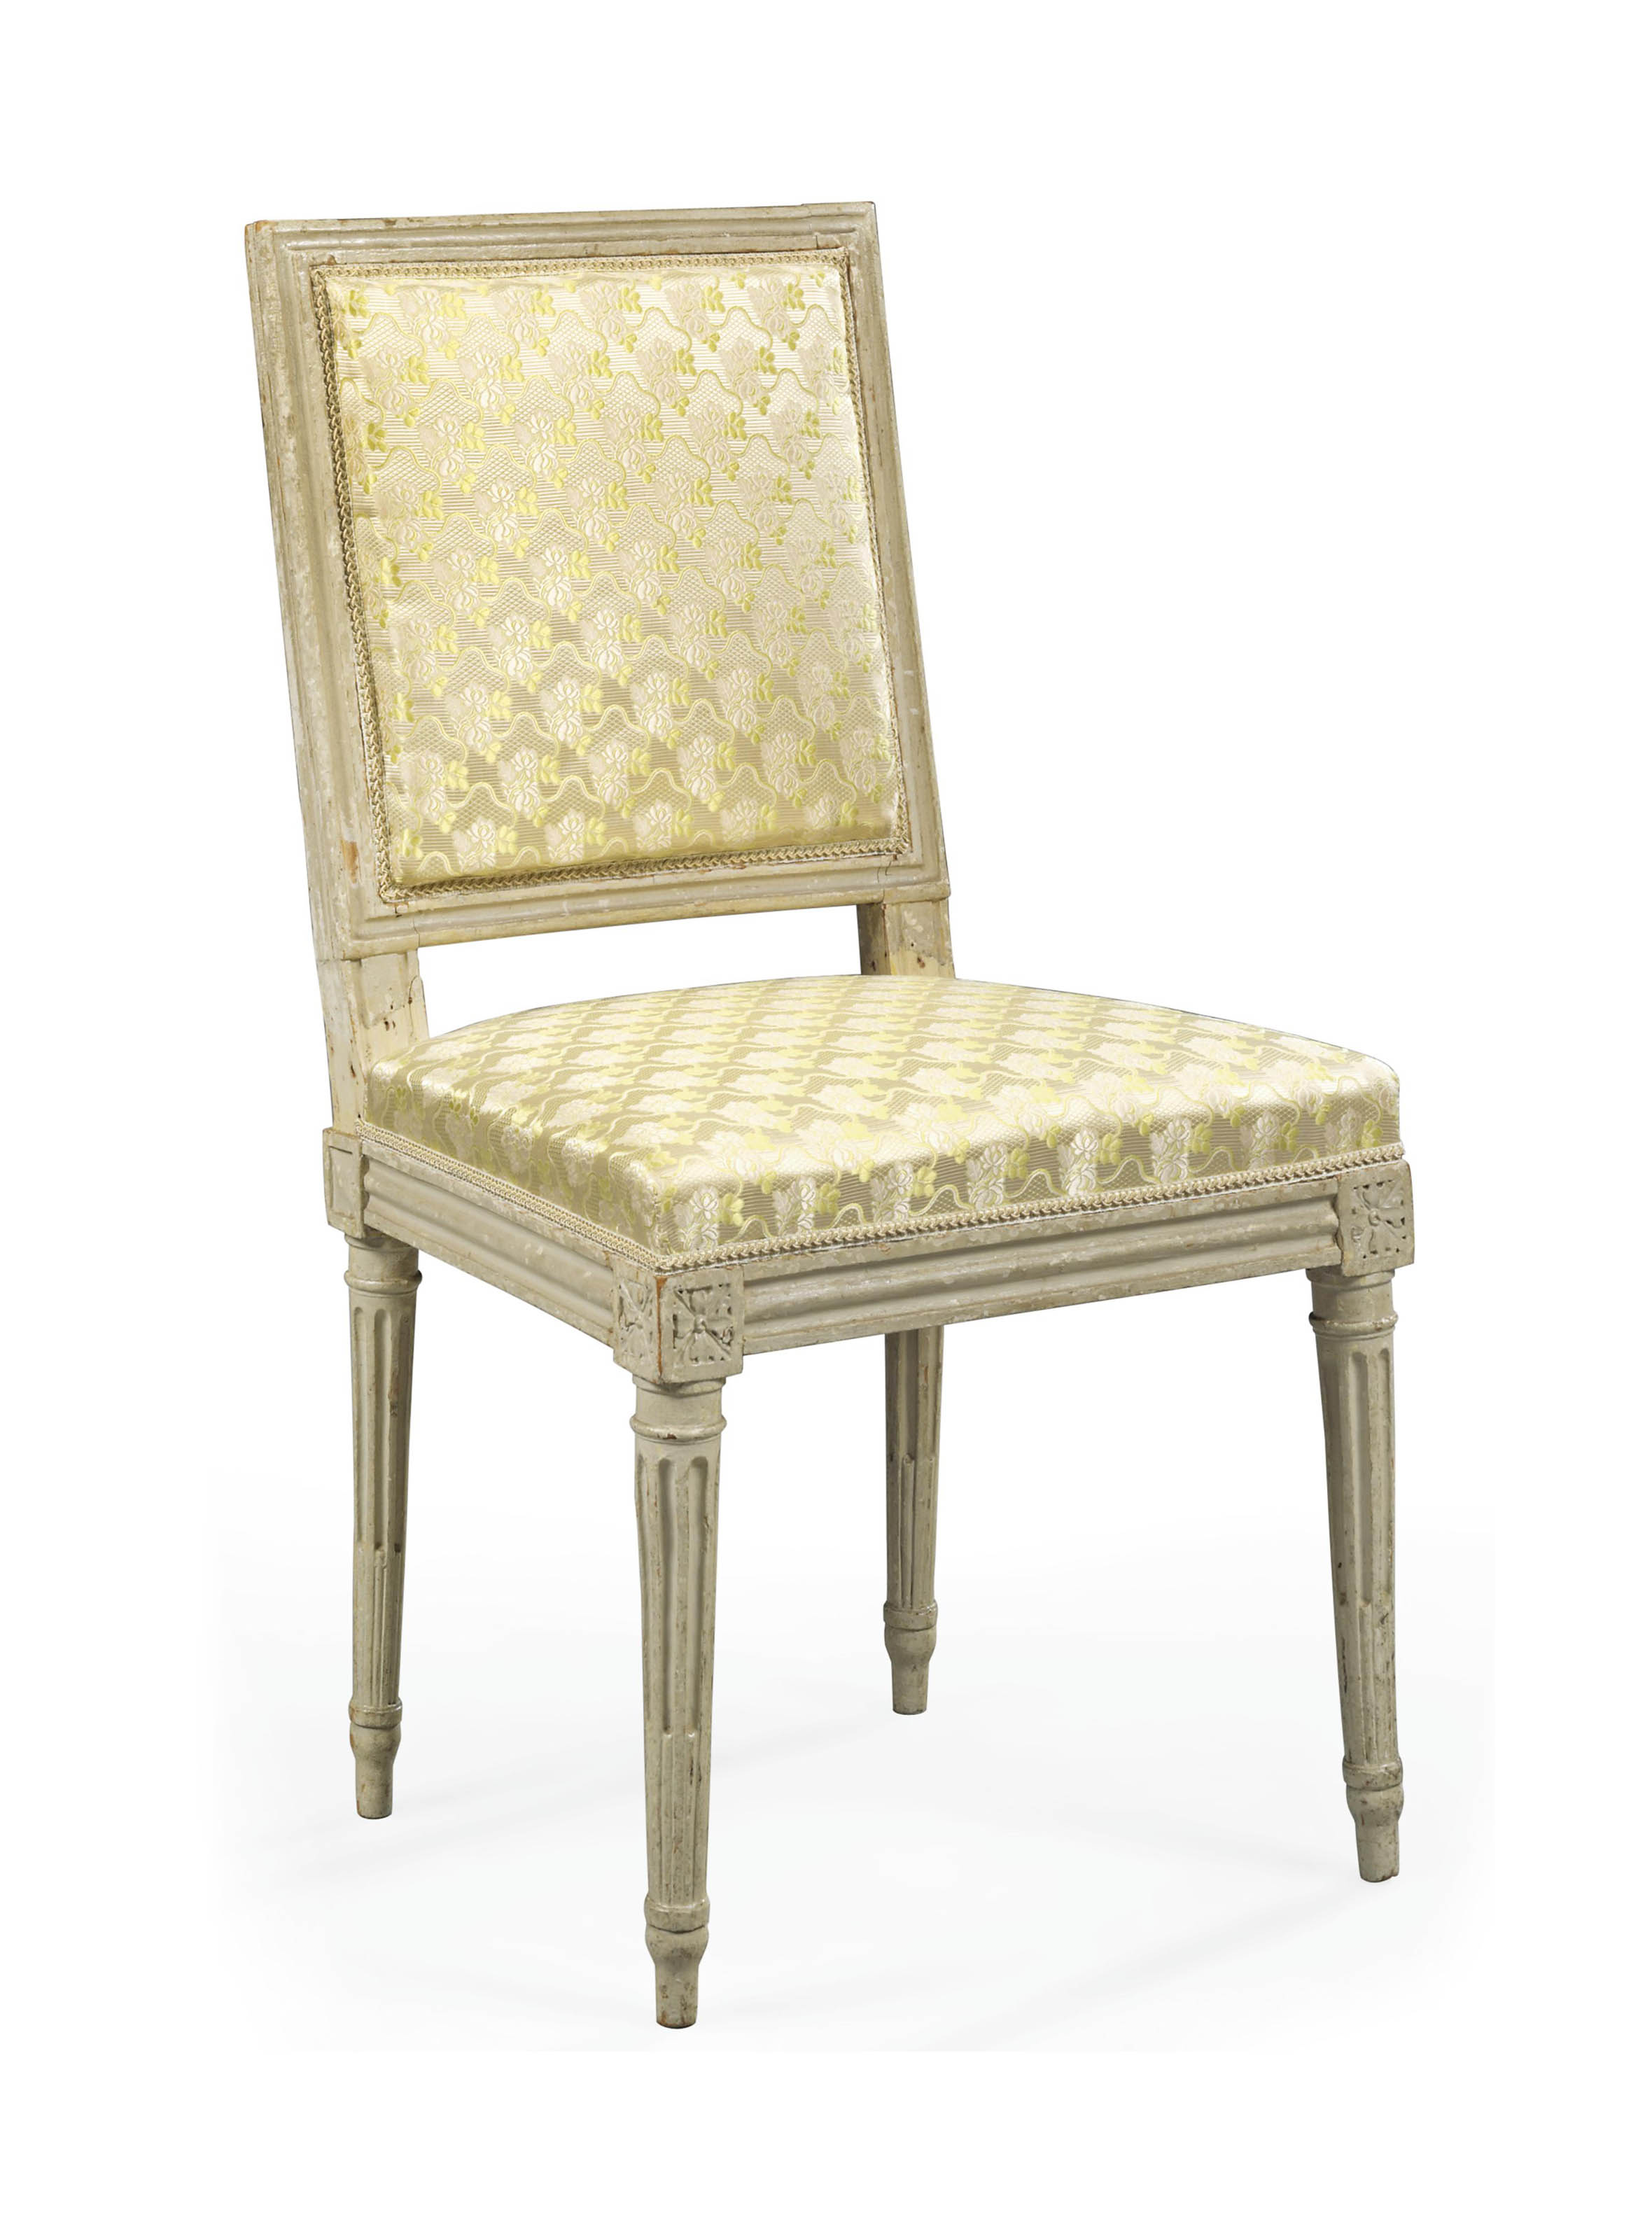 A LOUIS XVI WHITE-PAINTED SIDE CHAIR